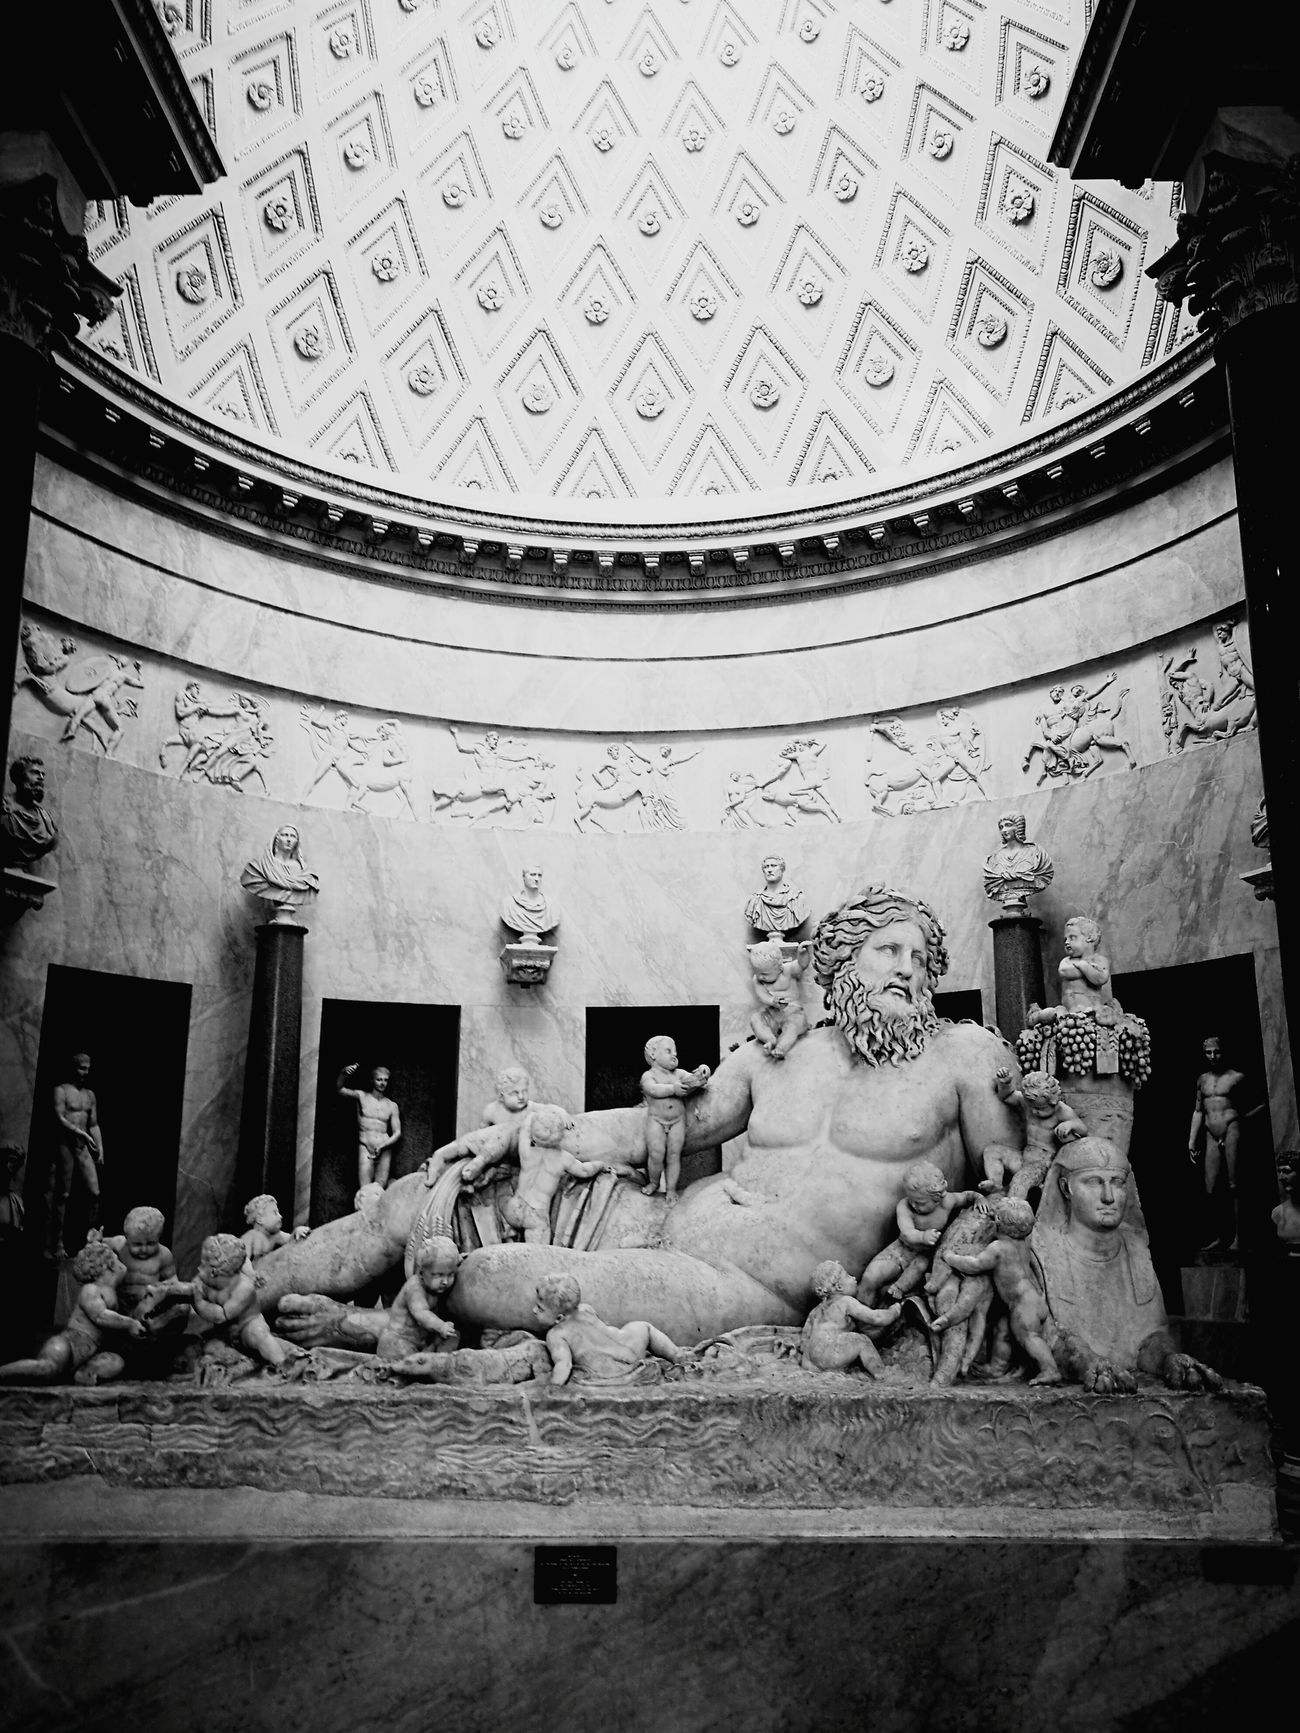 Architecture Statue Indoors  No People Sculpture Ancient Civilization Rome Architecture SanPietro Vatican Museum VaticanCity VaticanMuseum Vatican Tourism Tourist Italy🇮🇹 Sculptures Art Potography Statue Nilo Nettuno Rome, Italy Politics And Government Blackandwhite Blackandwhite Photography